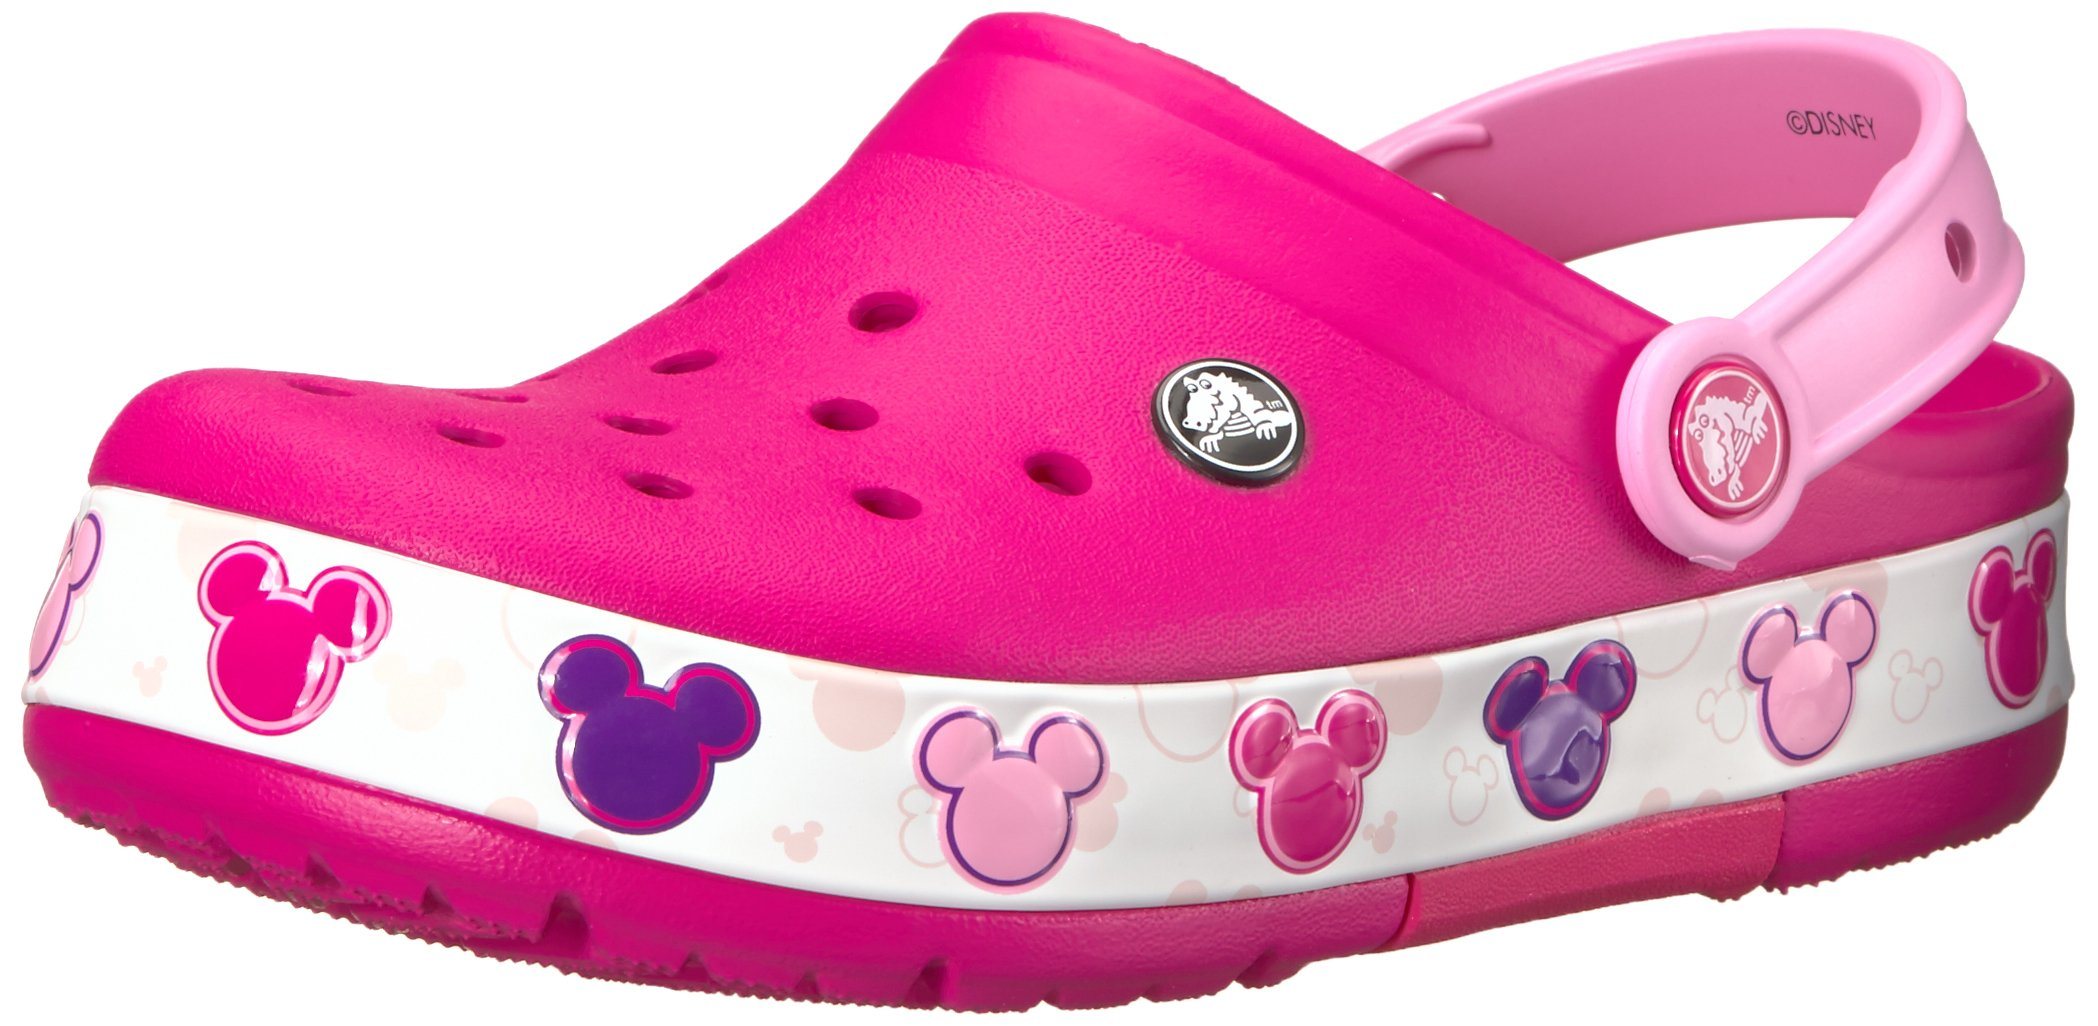 Crocs Kids' Crocband Fun Lab Mickey Light-up Clog, Candy Pink, 12 M US Little Kid by Crocs (Image #1)